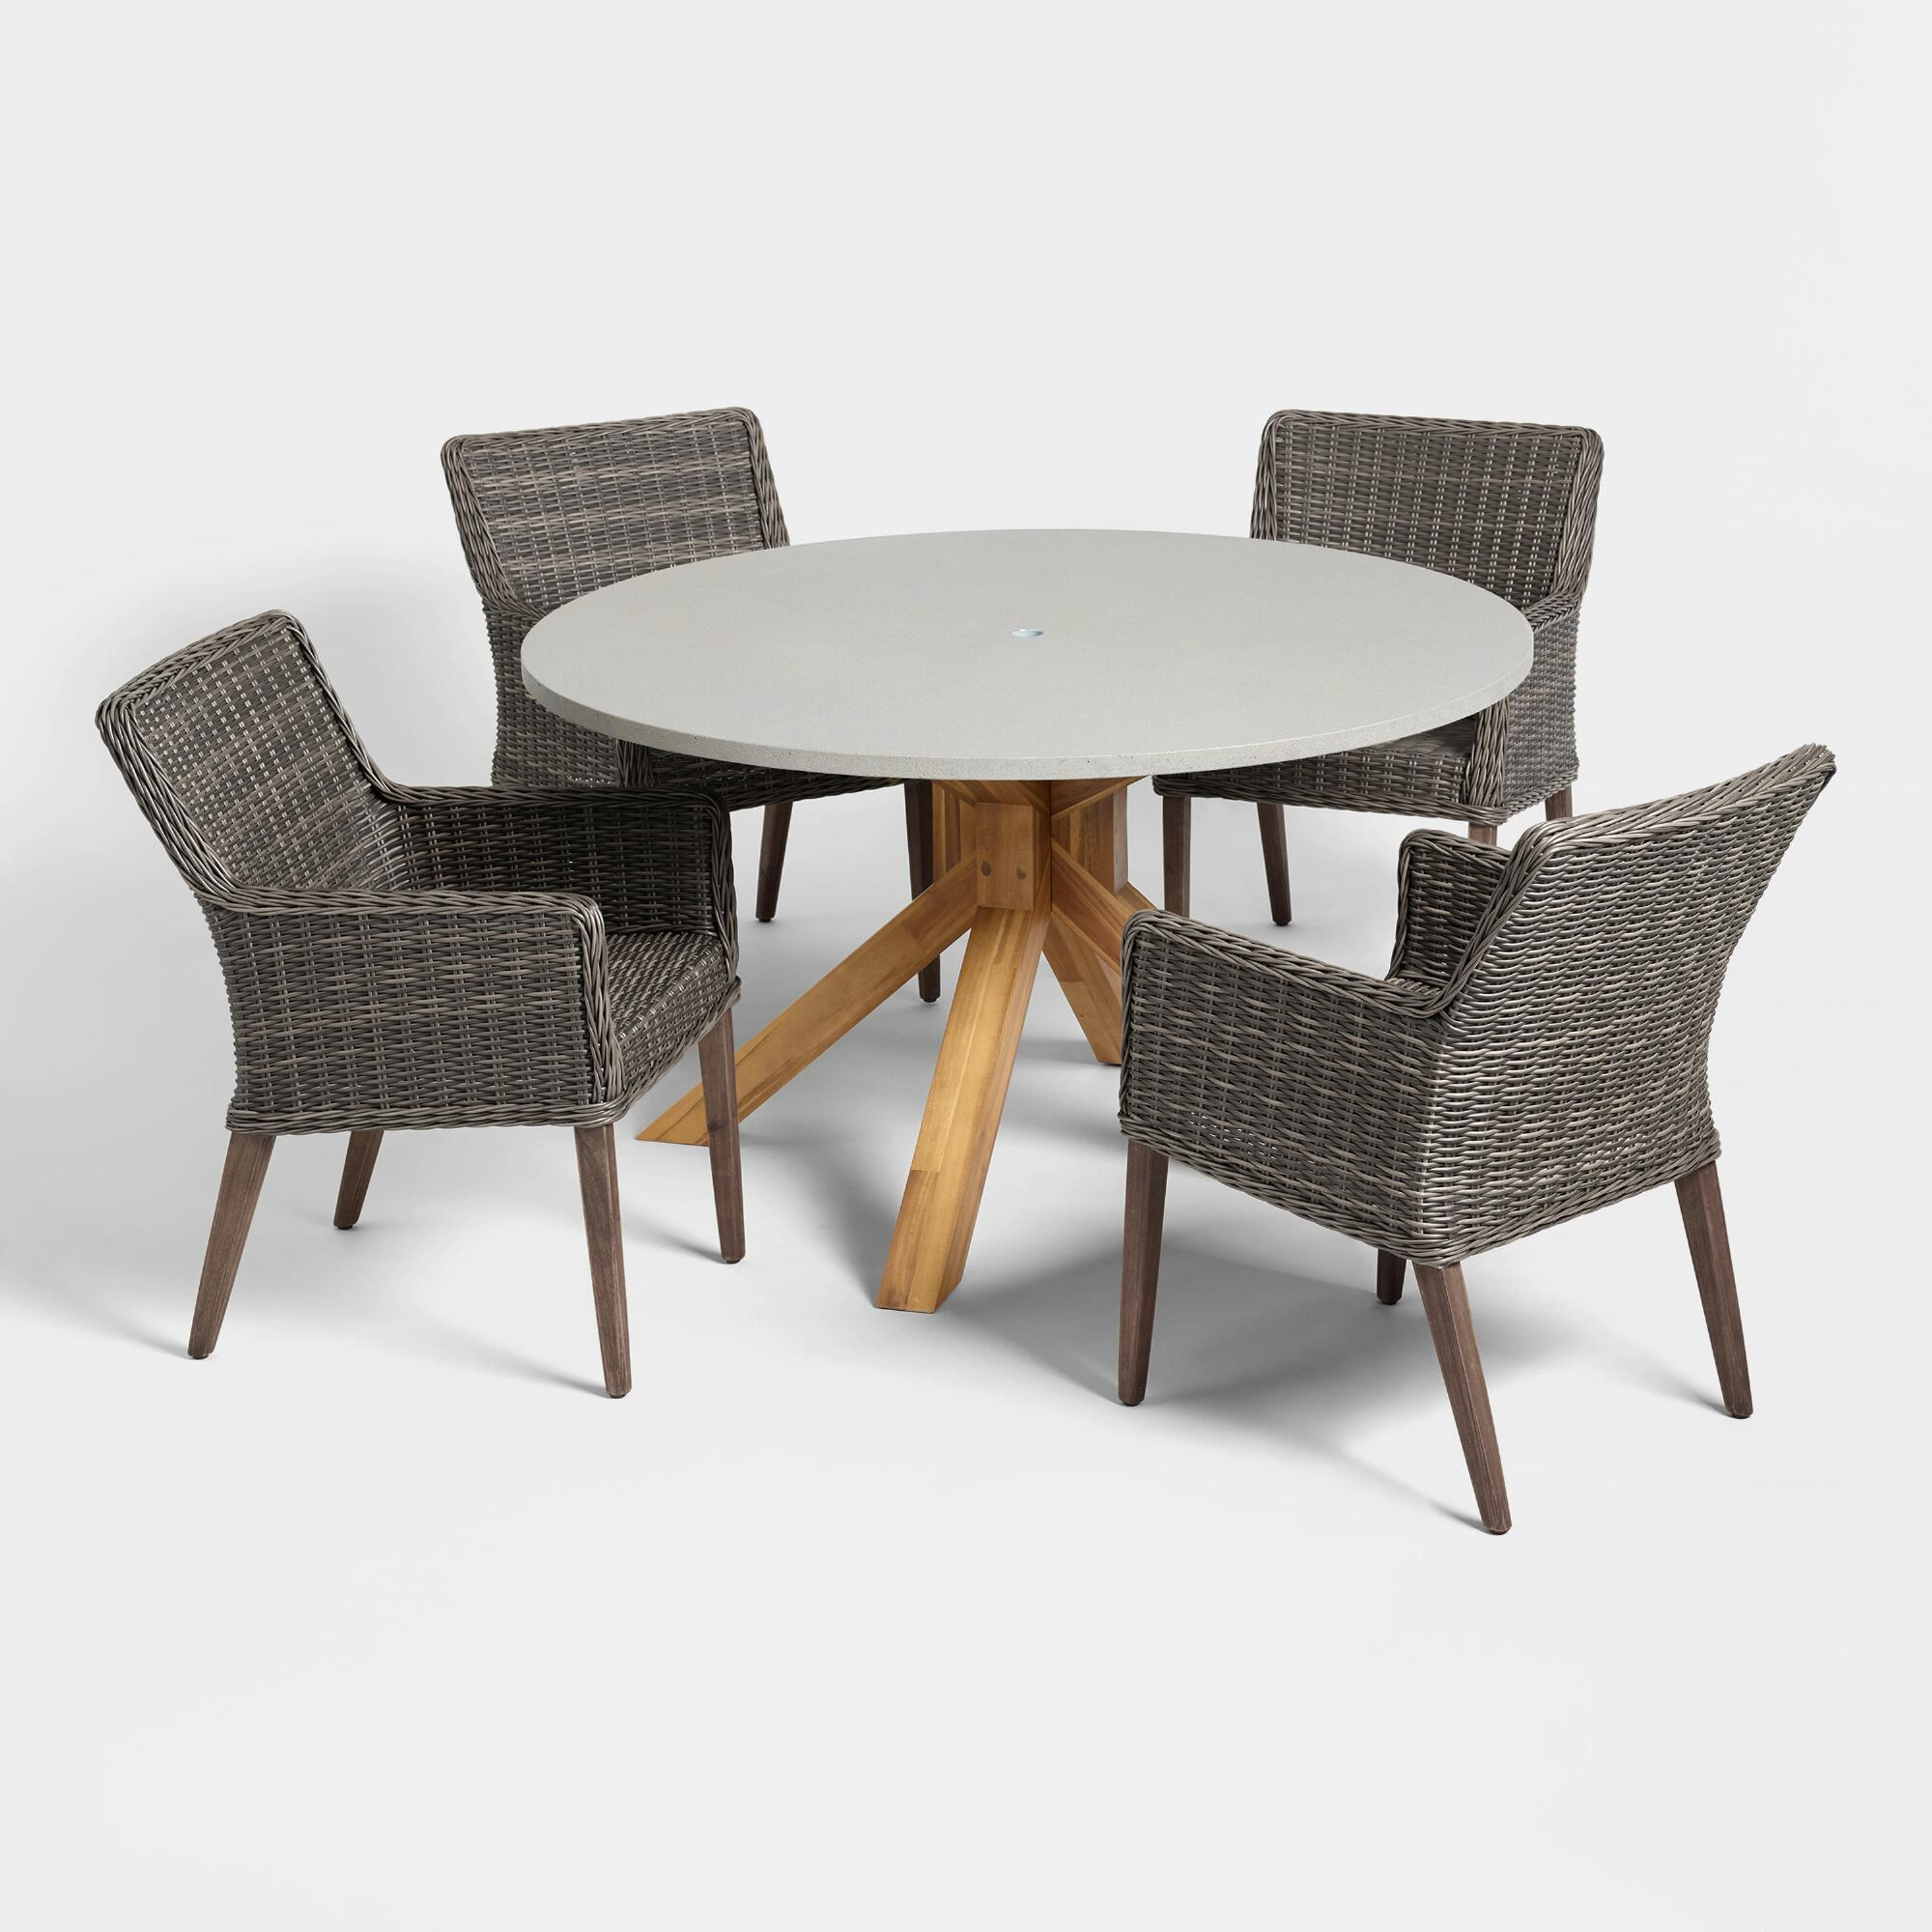 Faux Cement Palmera Outdoor Patio Dining Collection by World Market